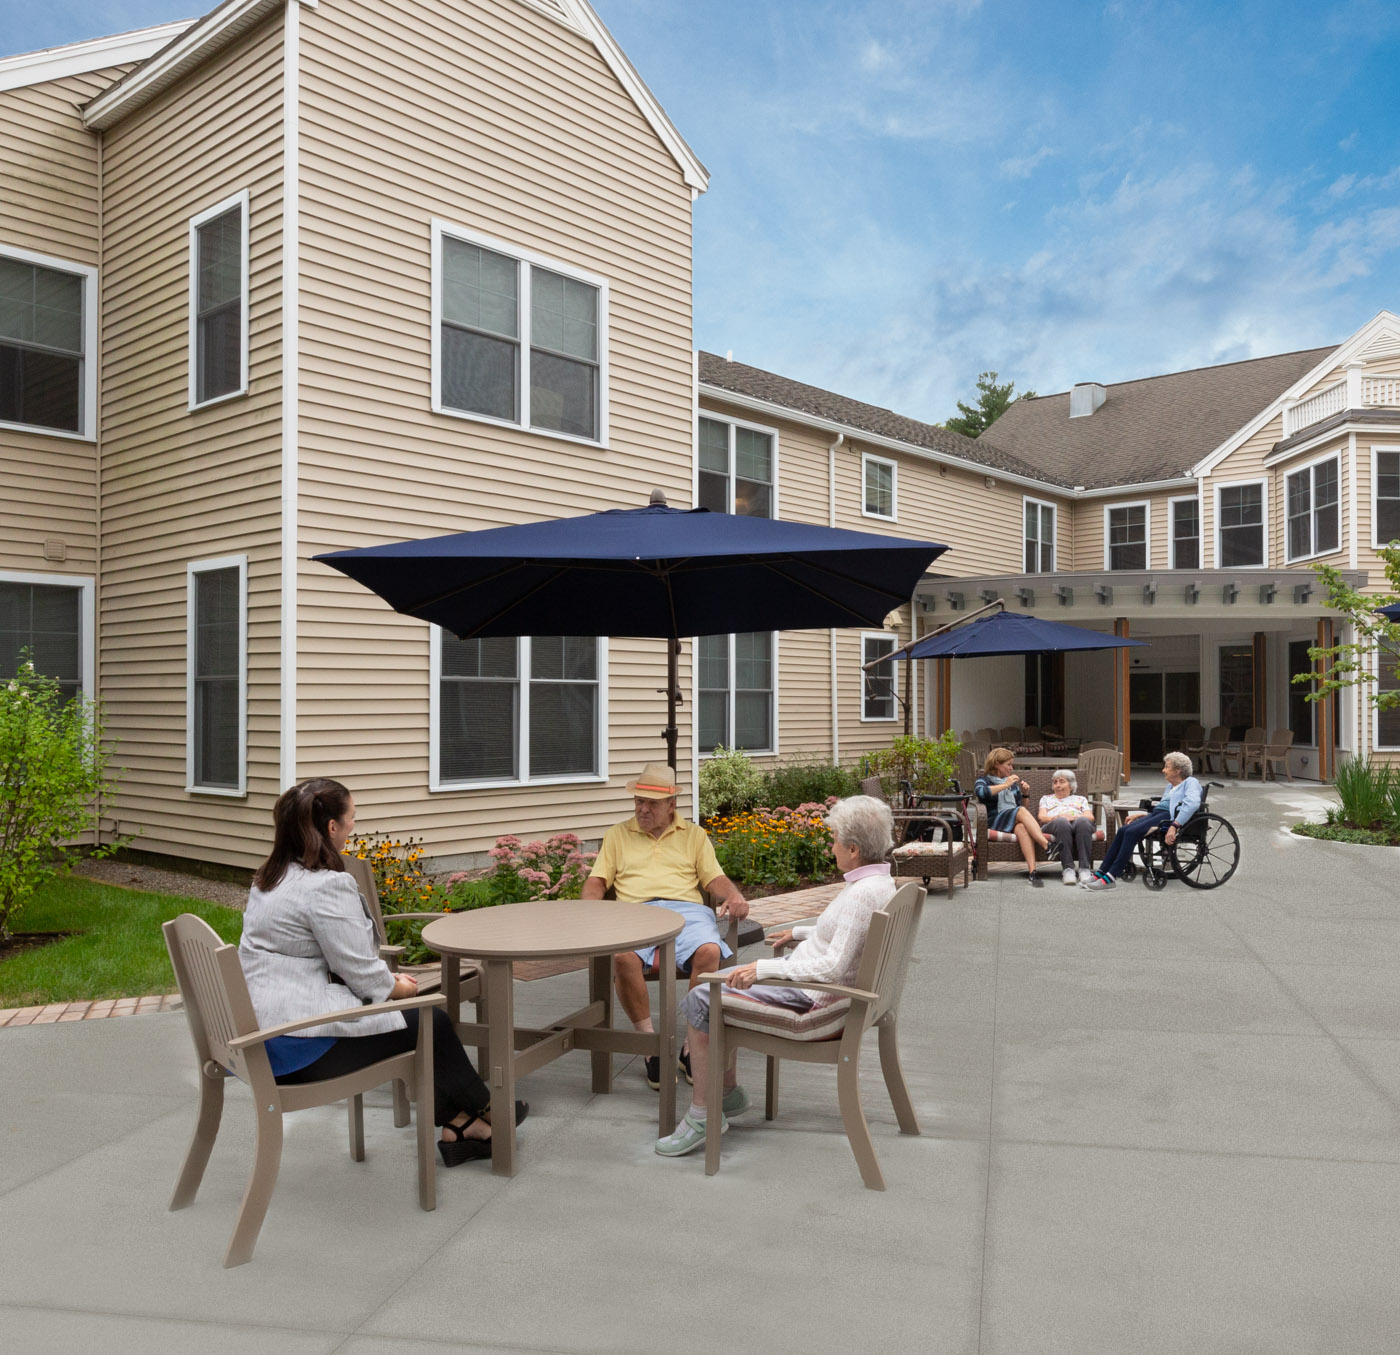 Residents at outdoor courtyard